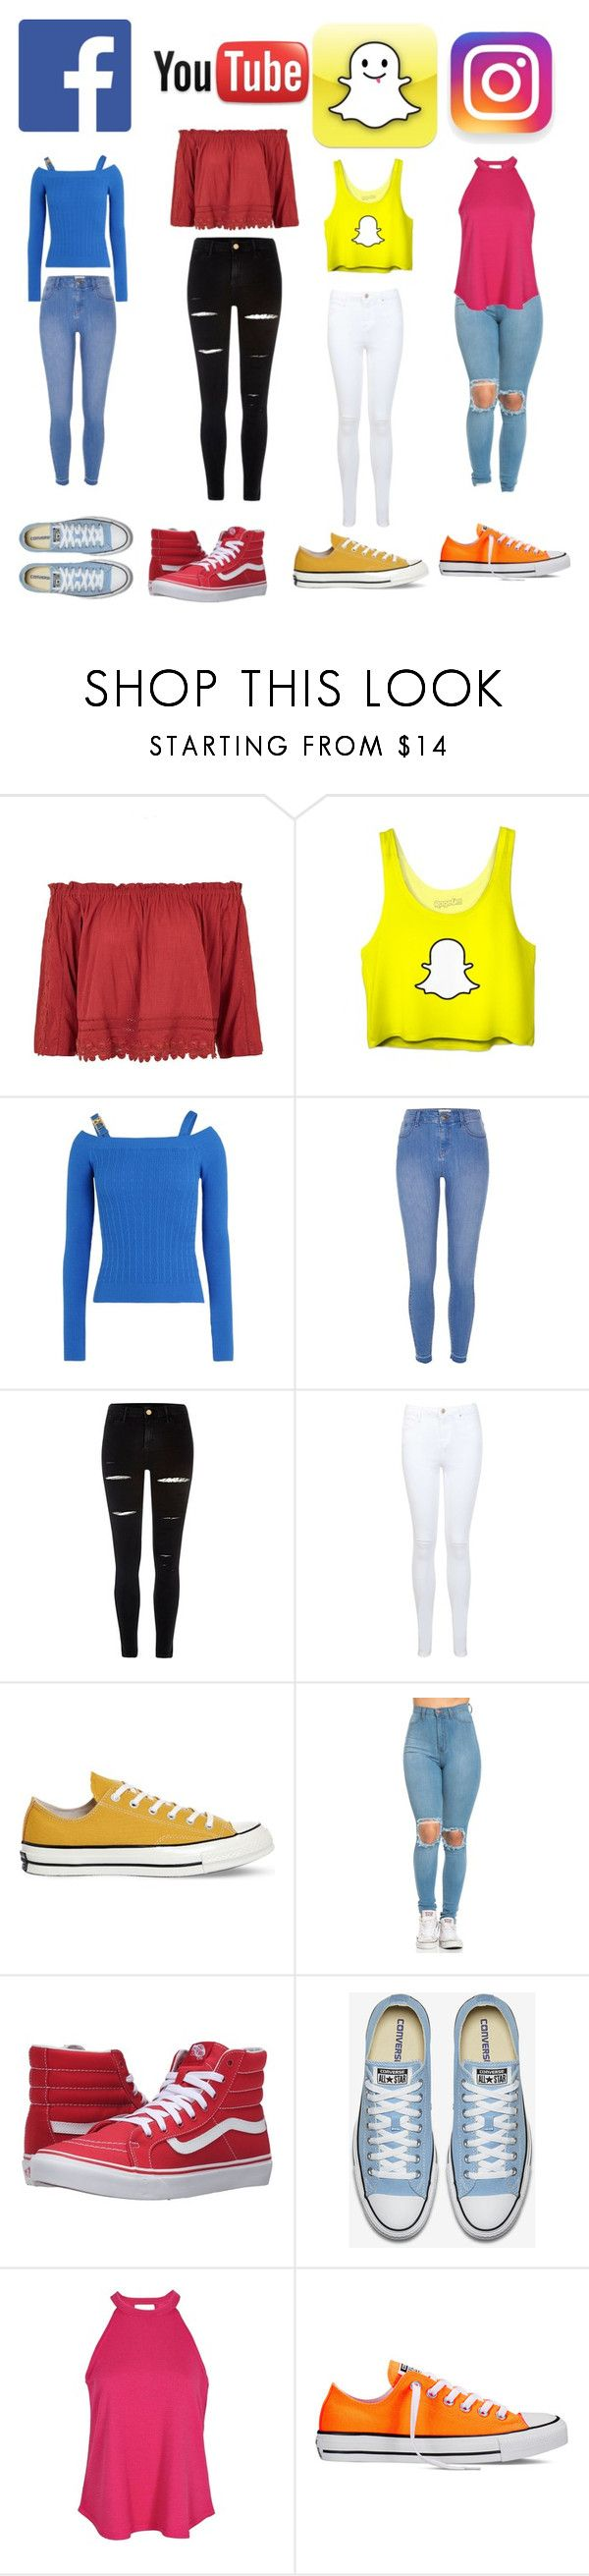 """Social media"" by alicia-brockett ❤ liked on Polyvore featuring Topshop, Love Moschino, River Island, Miss Selfridge, Converse, Vans and Boohoo"